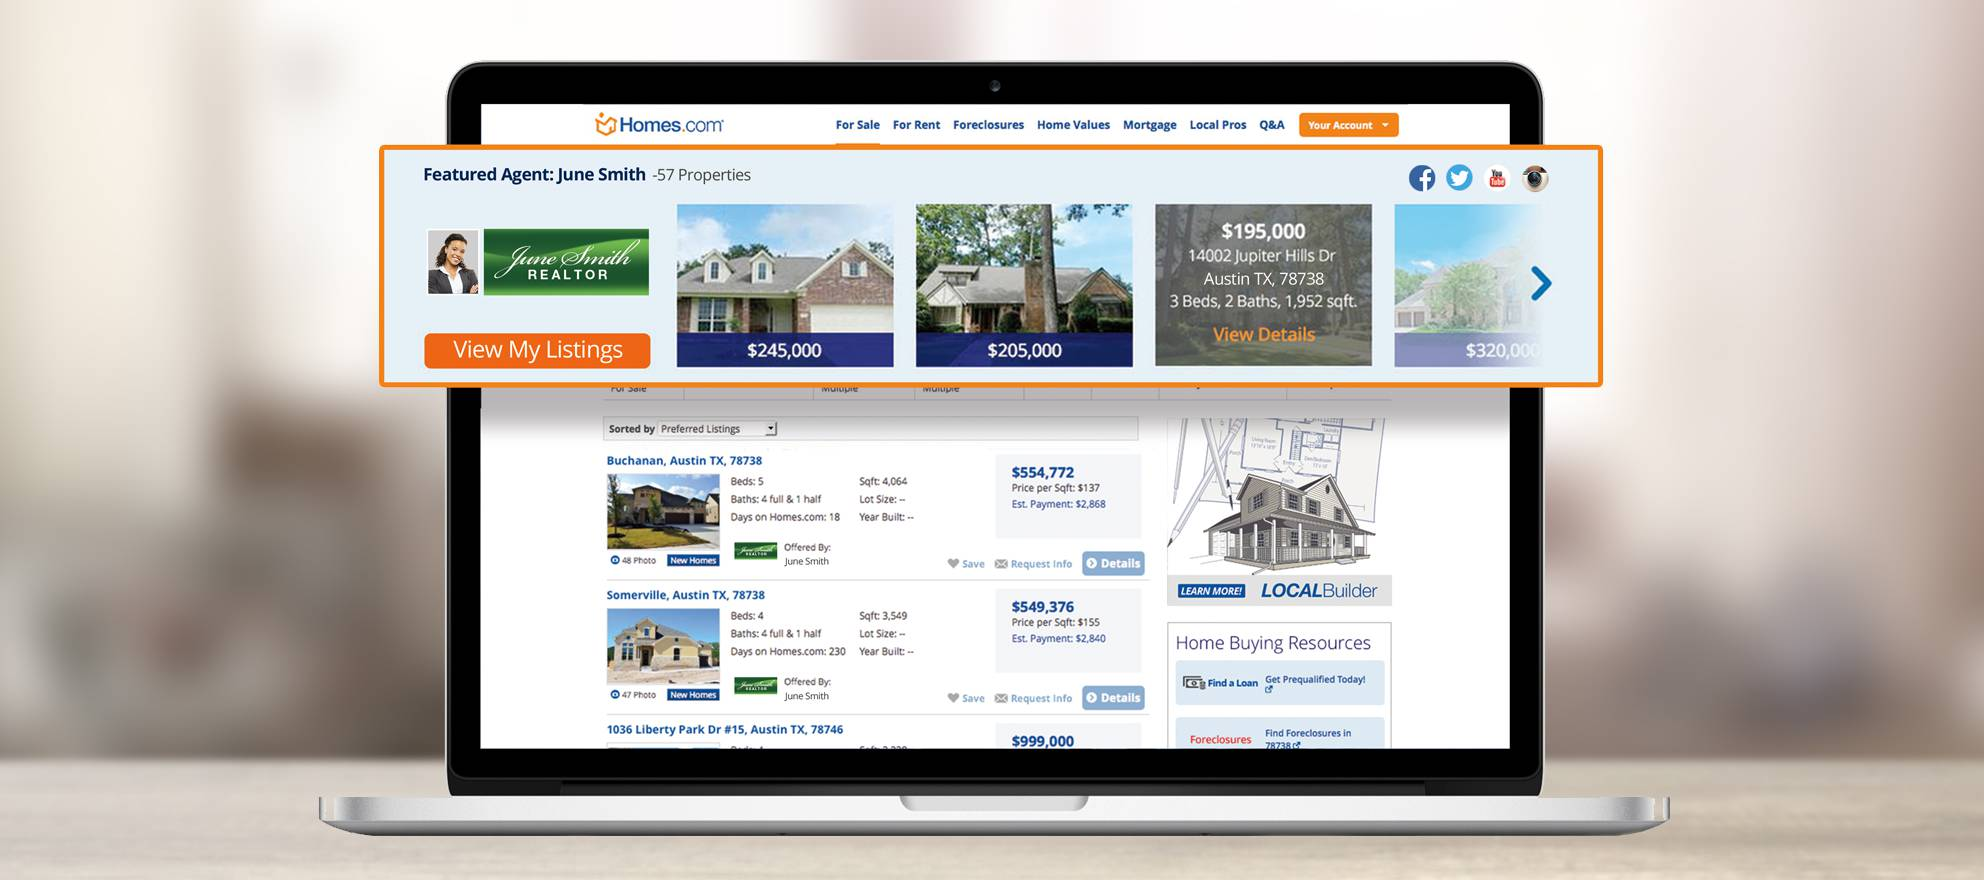 Homes.com debuts 'one of the largest banner ads in the industry'